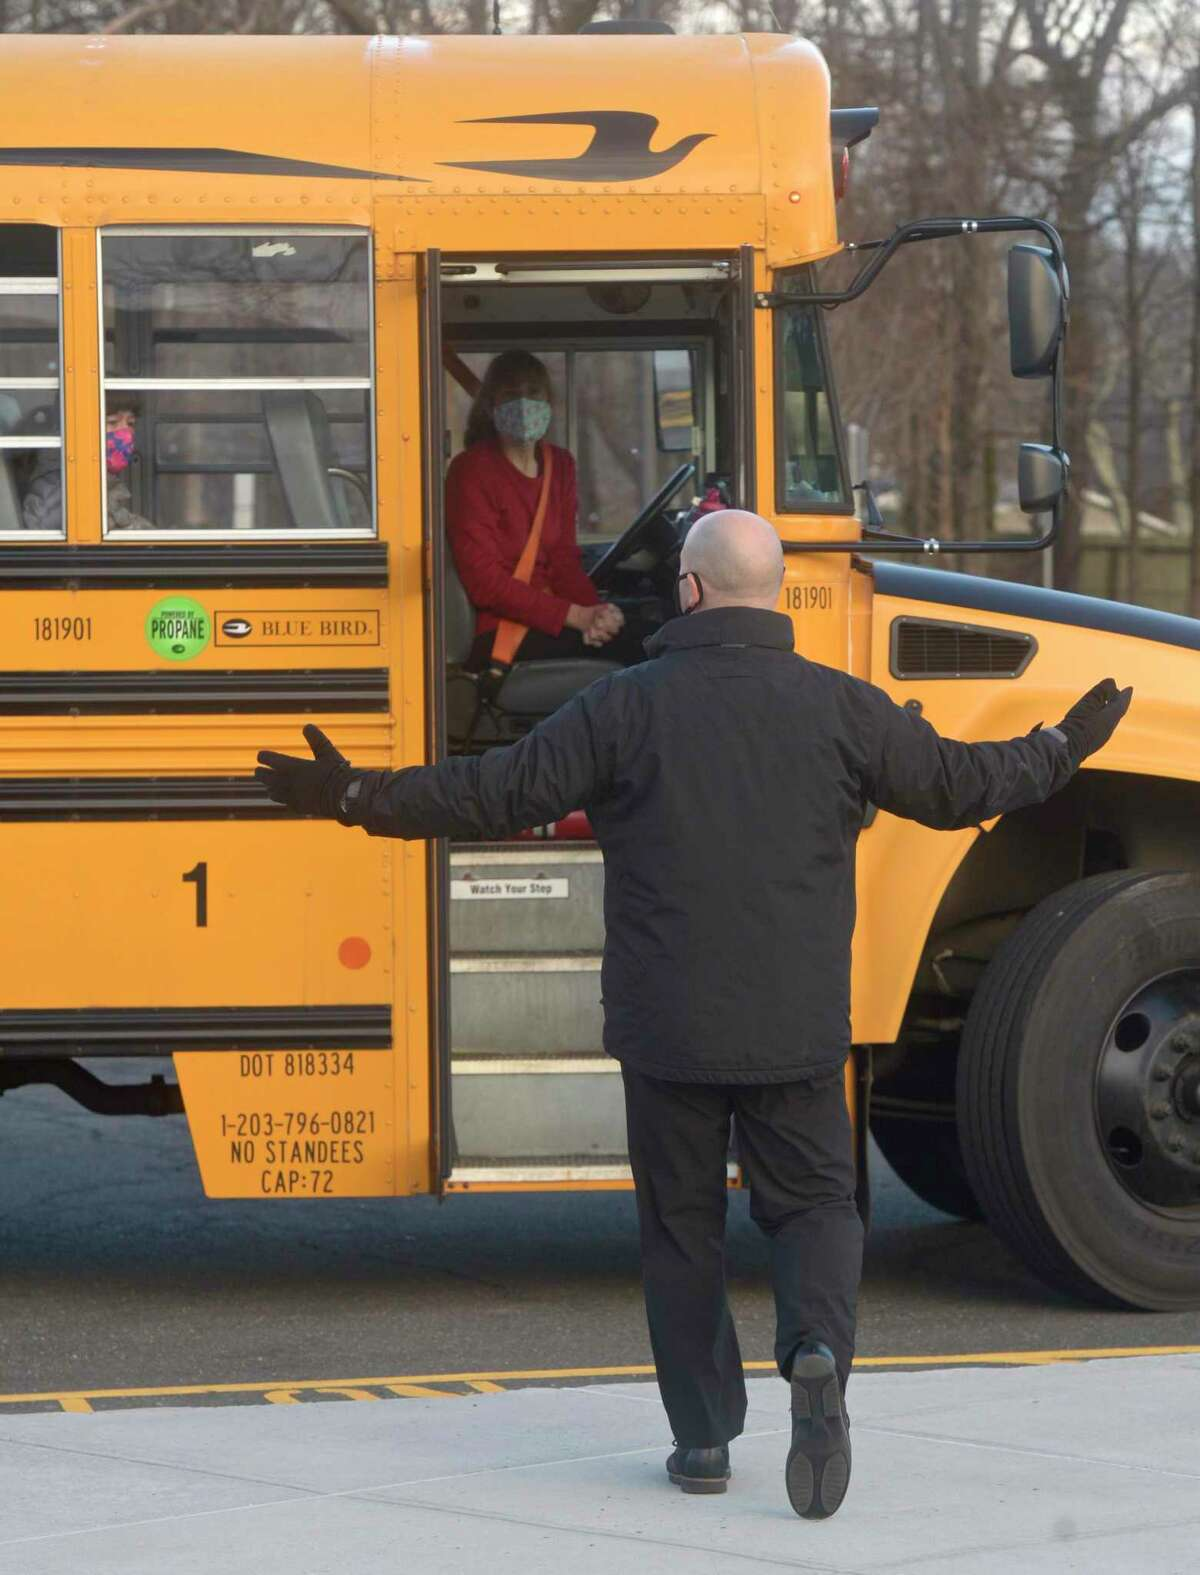 Stadley Rough Elementary School principal Lenny Cerlich welcomes students and their bus driver back to school for the first time since March of last year. Tuesday, January 19, 2021, in Danbury, Conn. Danbury is participating in a state program intended to better engage students who struggled during COVID-19.